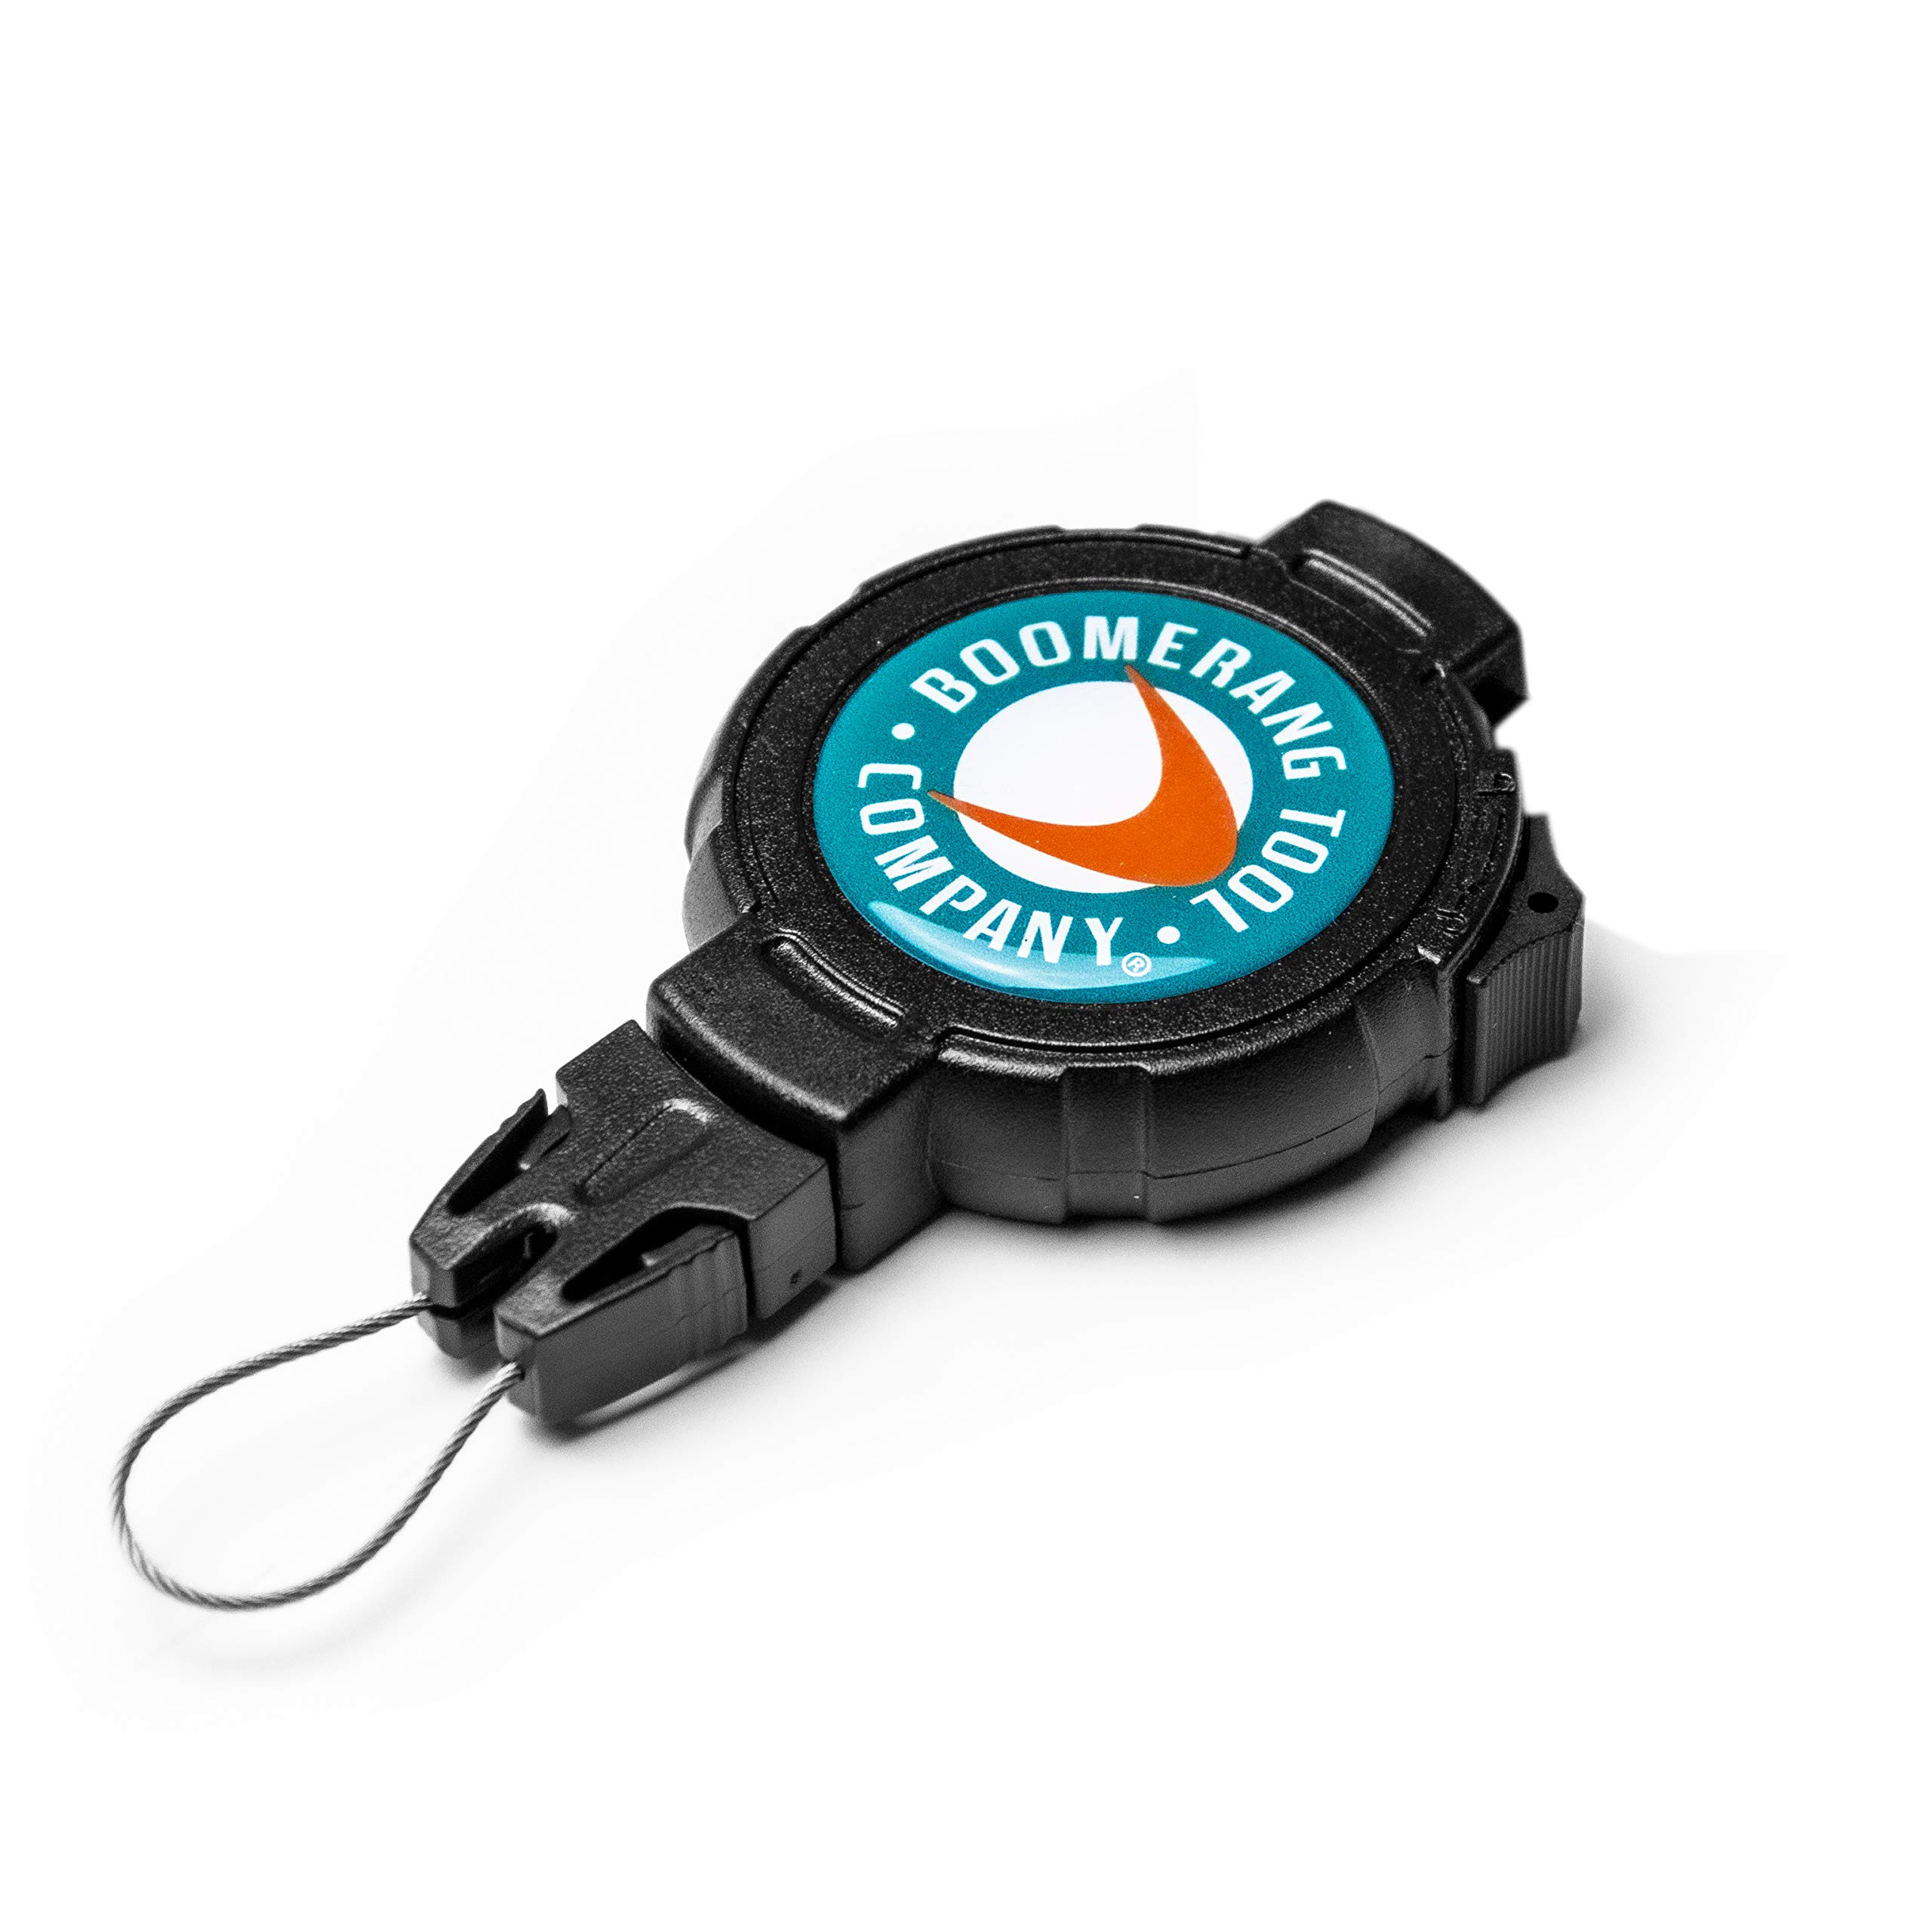 Boomerang Tool Company Fishing Retractable Gear Tether with a Retractable Kevlar Cord and Carabiner, Hook & Loop Strap or Belt Clip and Universal Wire End Fitting - Made in the USA